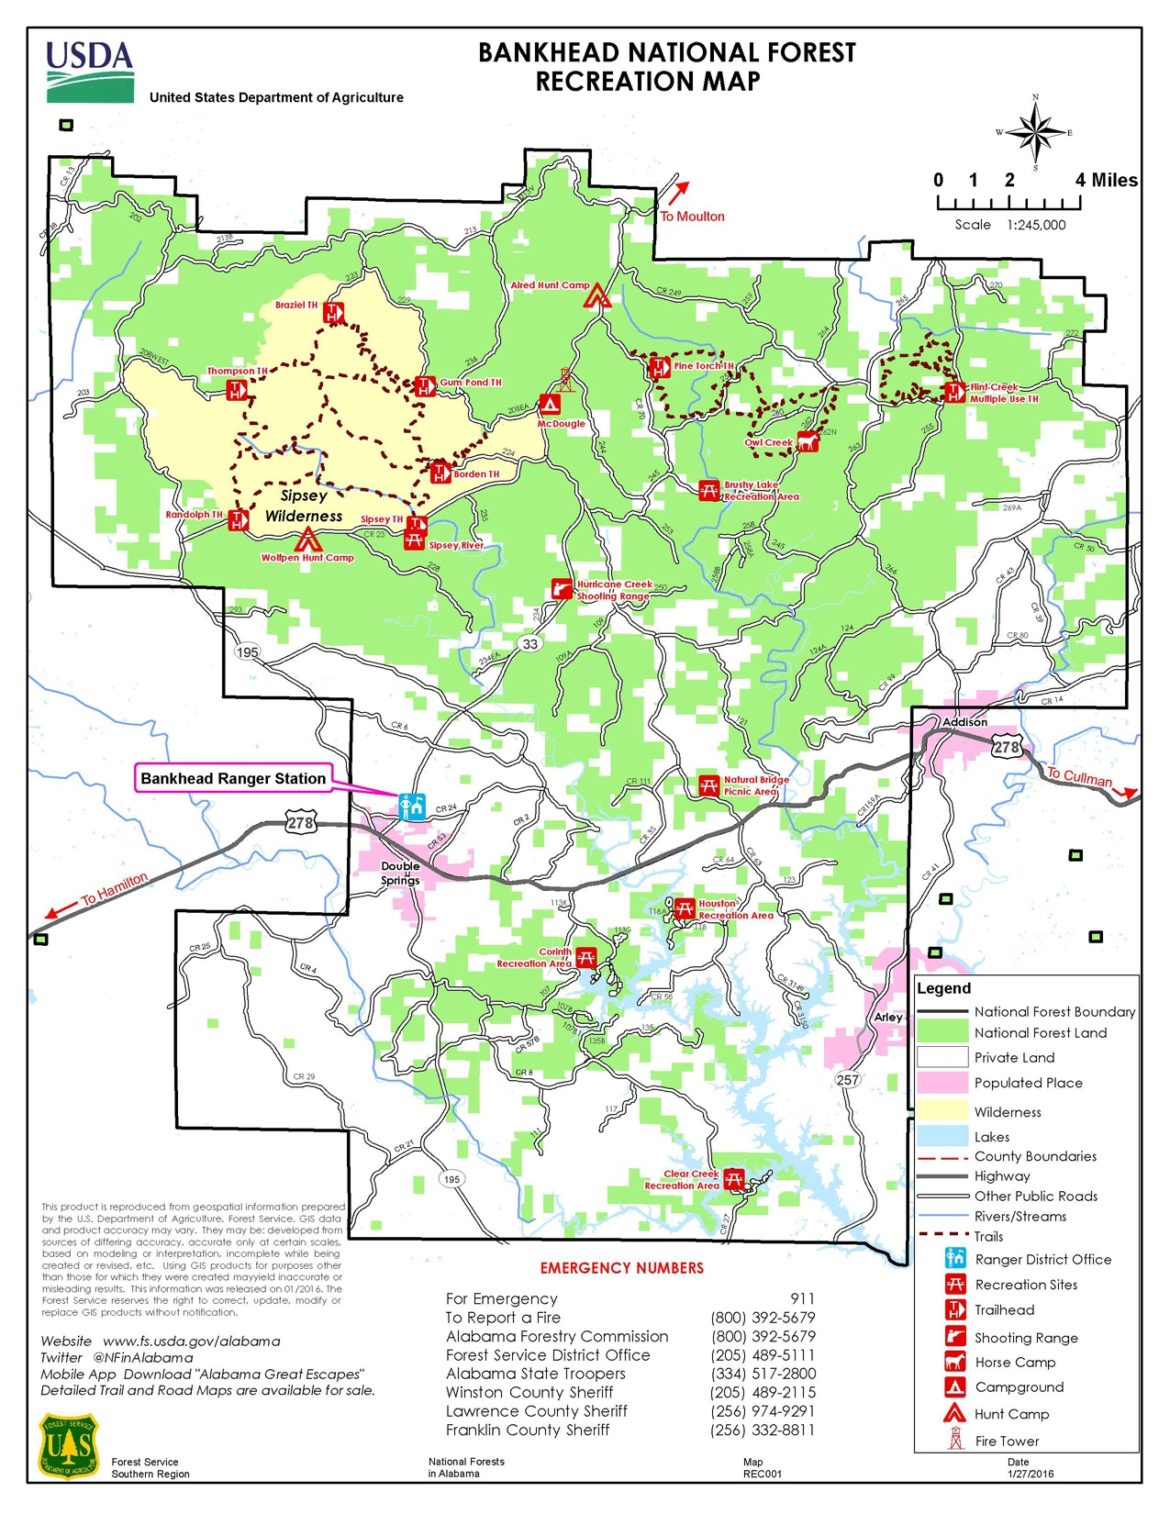 Bankhead Forest Recreation Map